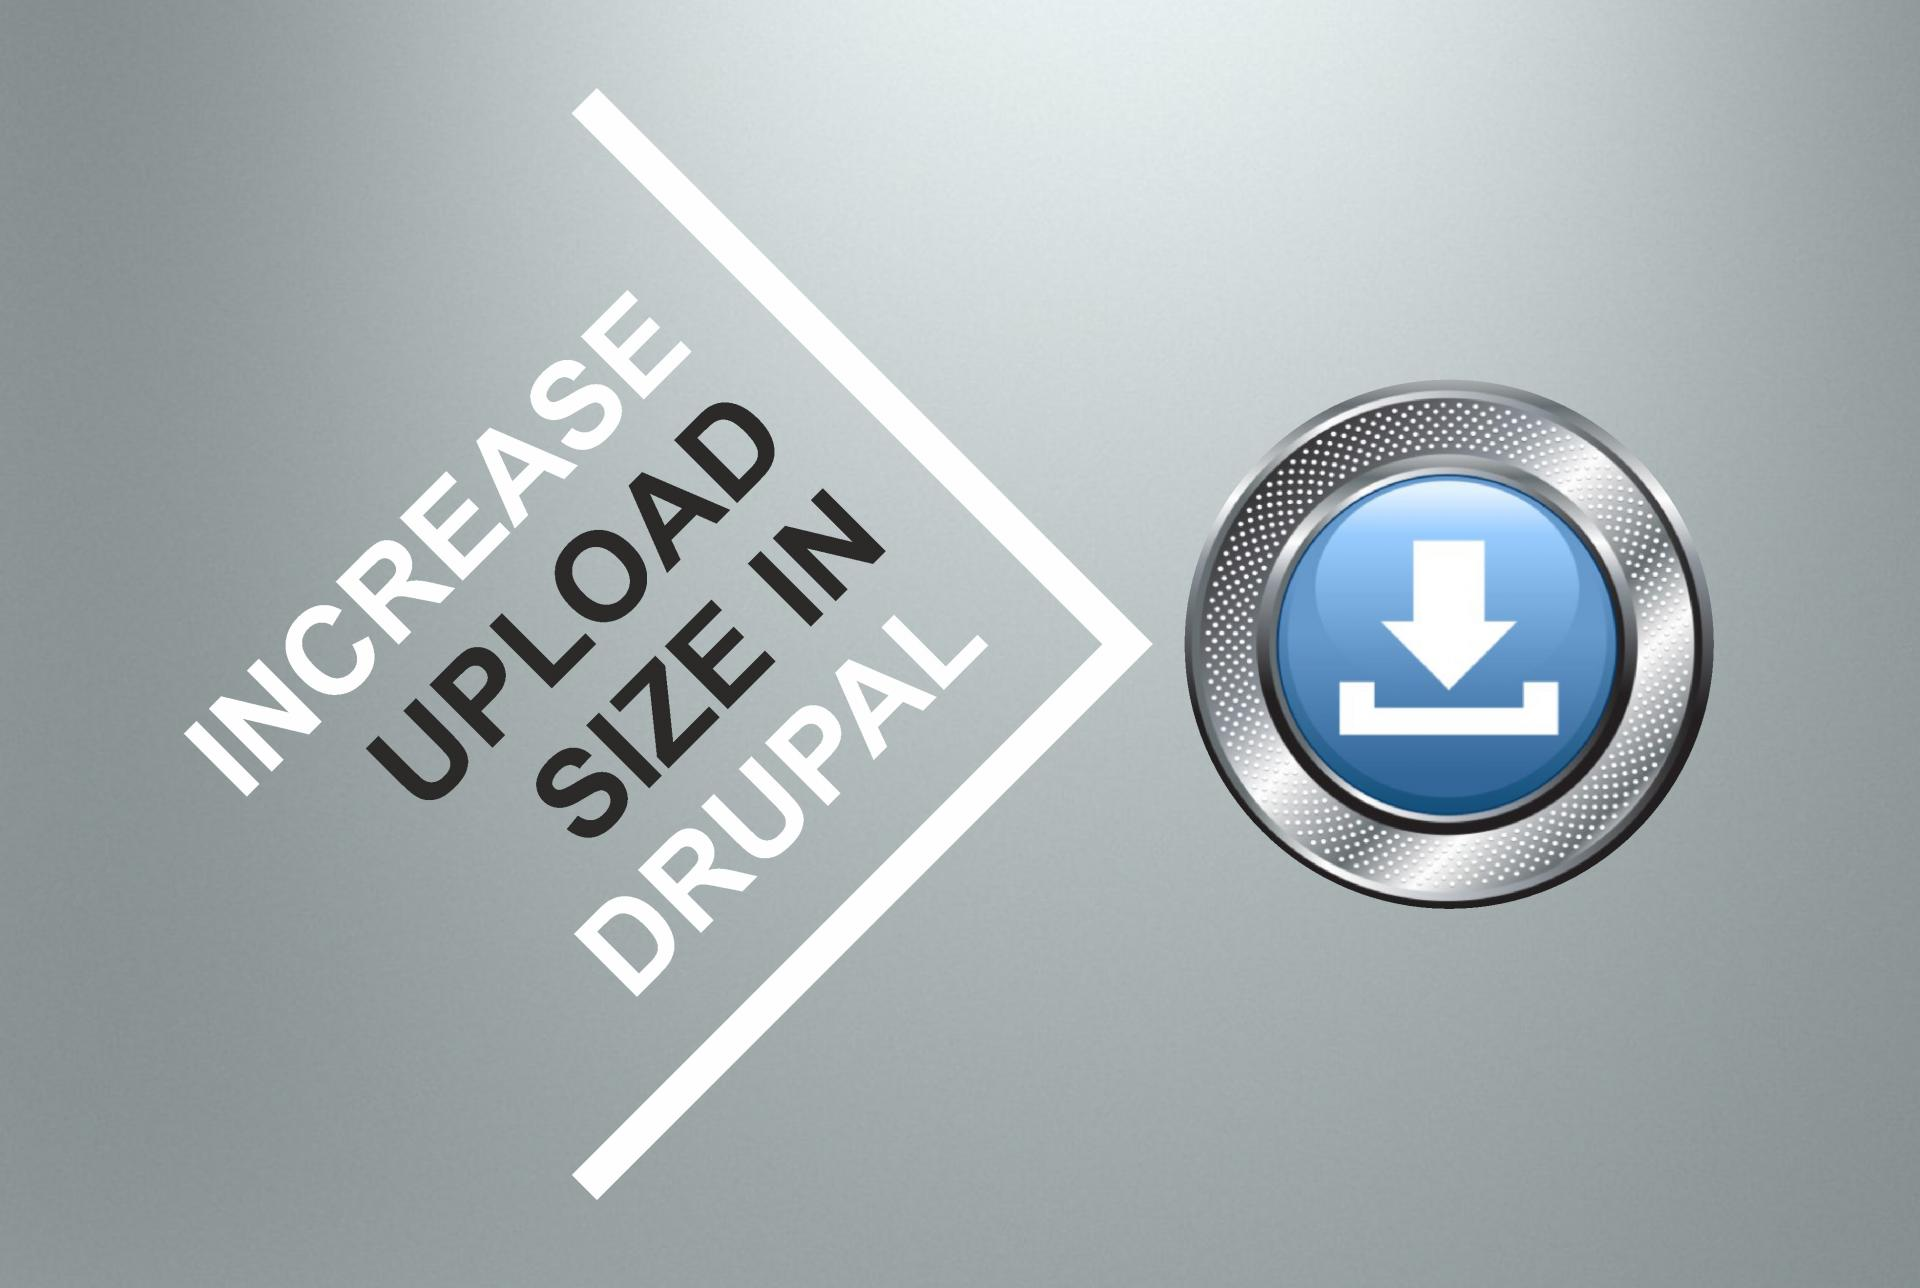 How to increase the maximum file upload size in Drupal?